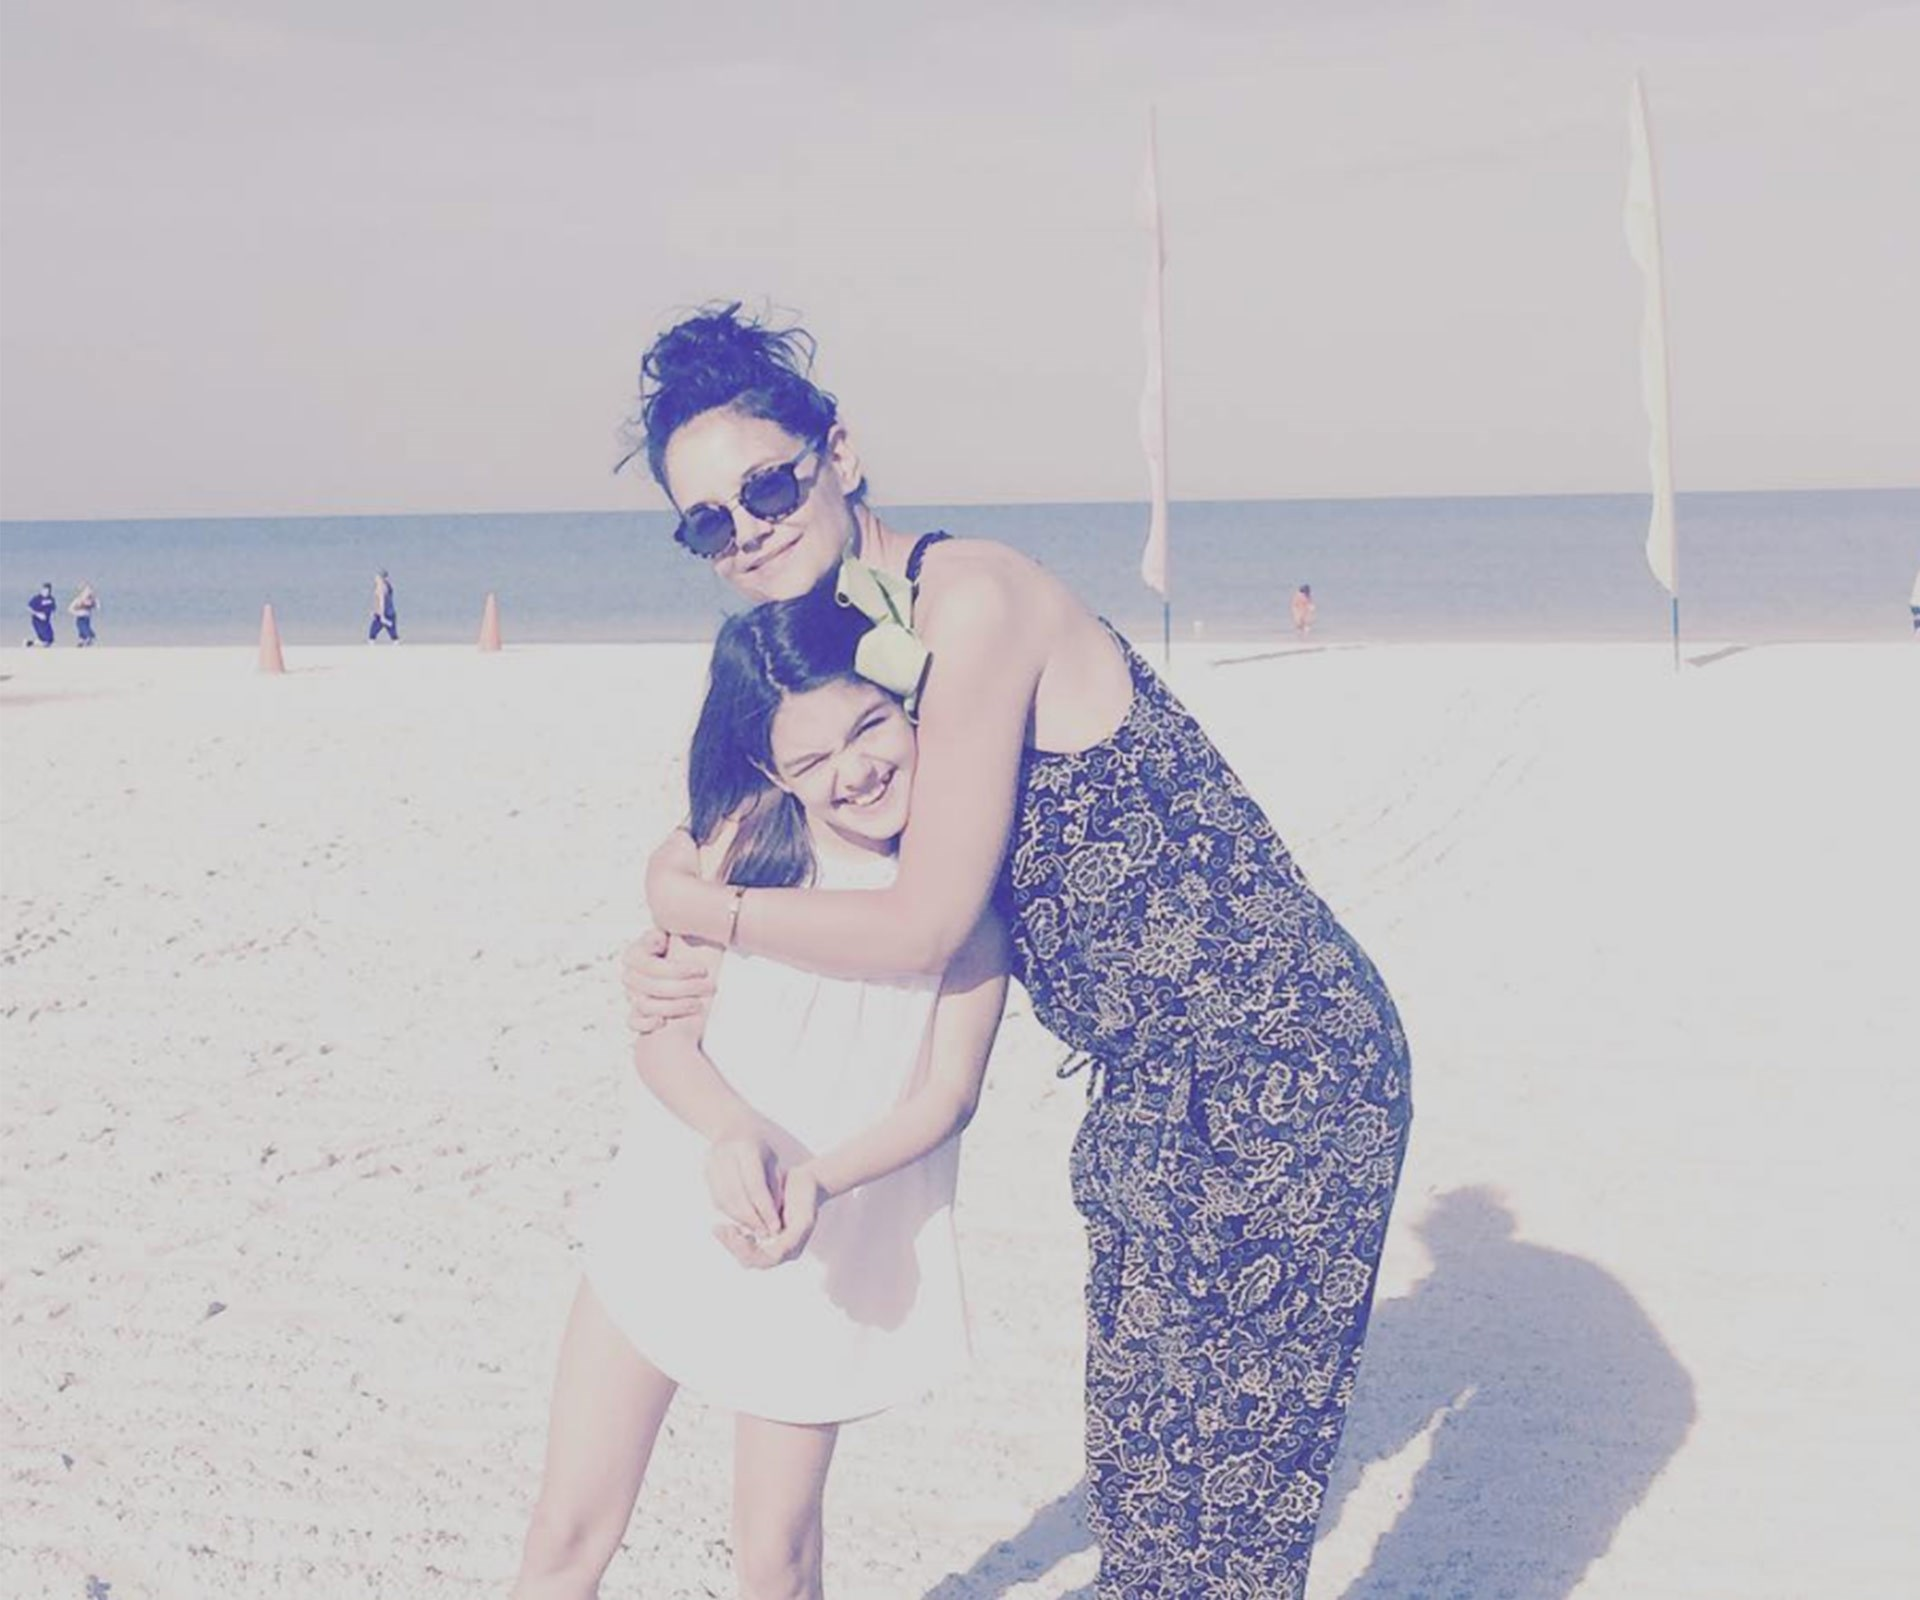 "Katie Holmes and her look-alike daughter Suri Cruise are making us miss the summer sun with their adorable getaway snaps. ""My sweetie,"" the actress wrote beside this adorable beach memory."